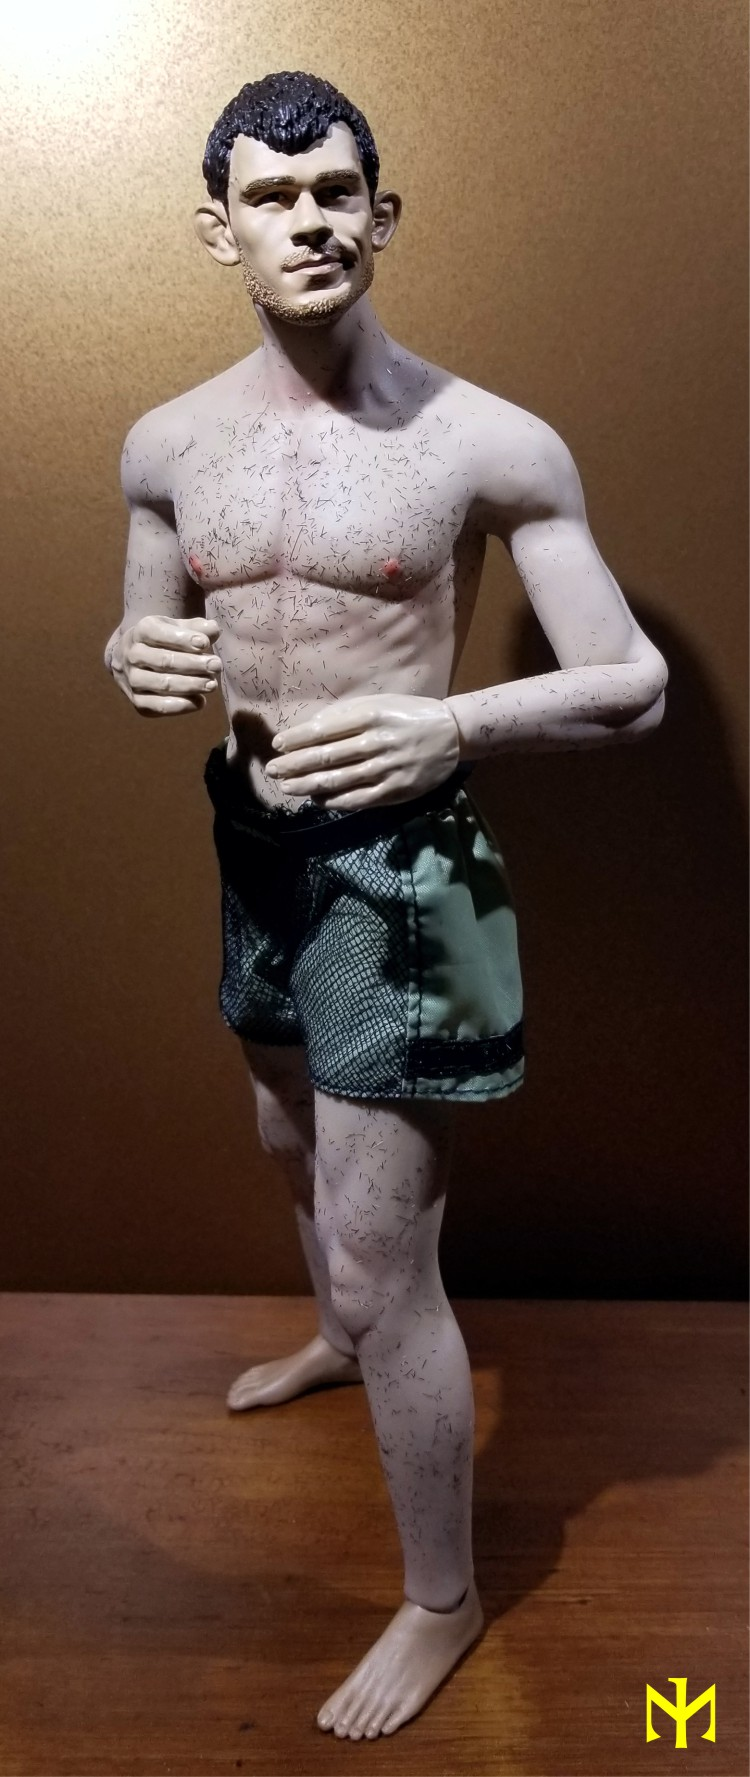 ufc - Kitbash UFC Champion Forrest Griffin Forgri19